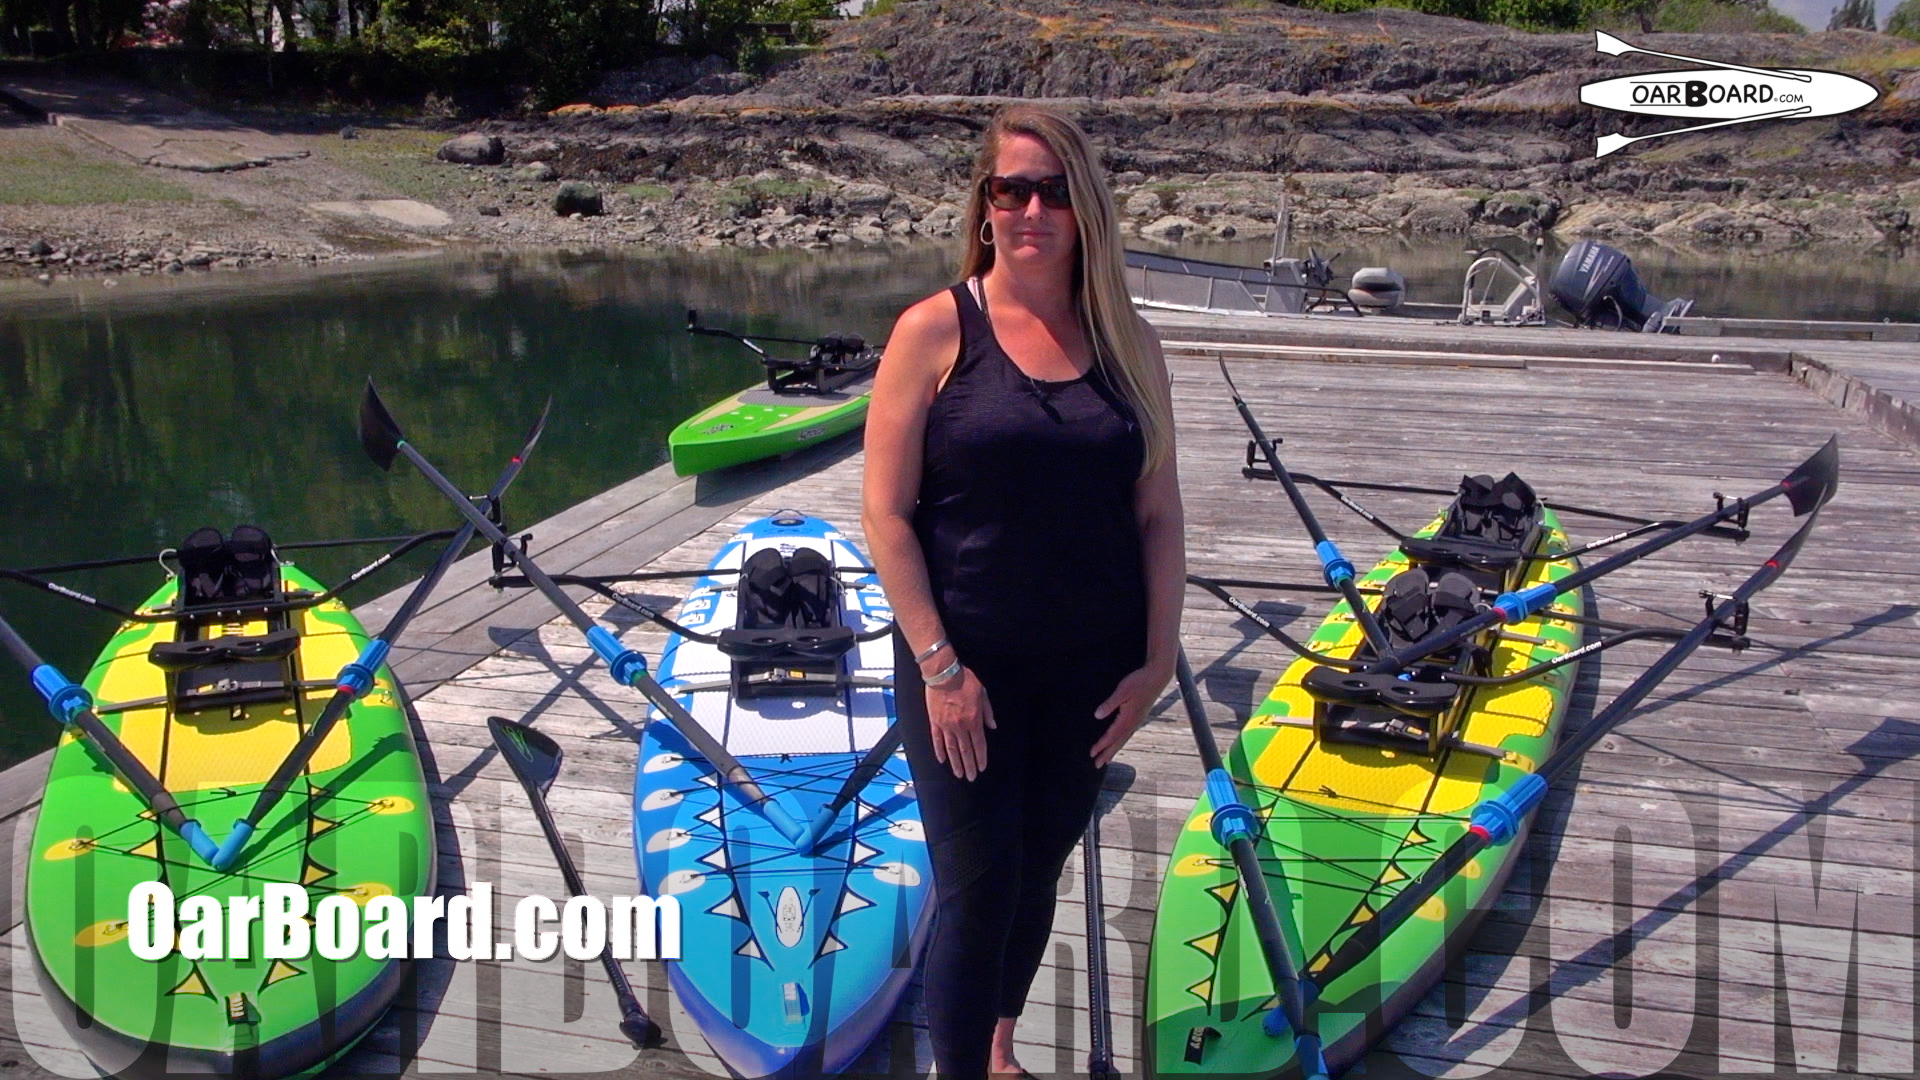 Diana-Lesieur-Oar-Board-Rower-Adventure-Fitness-SUP-Standup-Paddle-Board